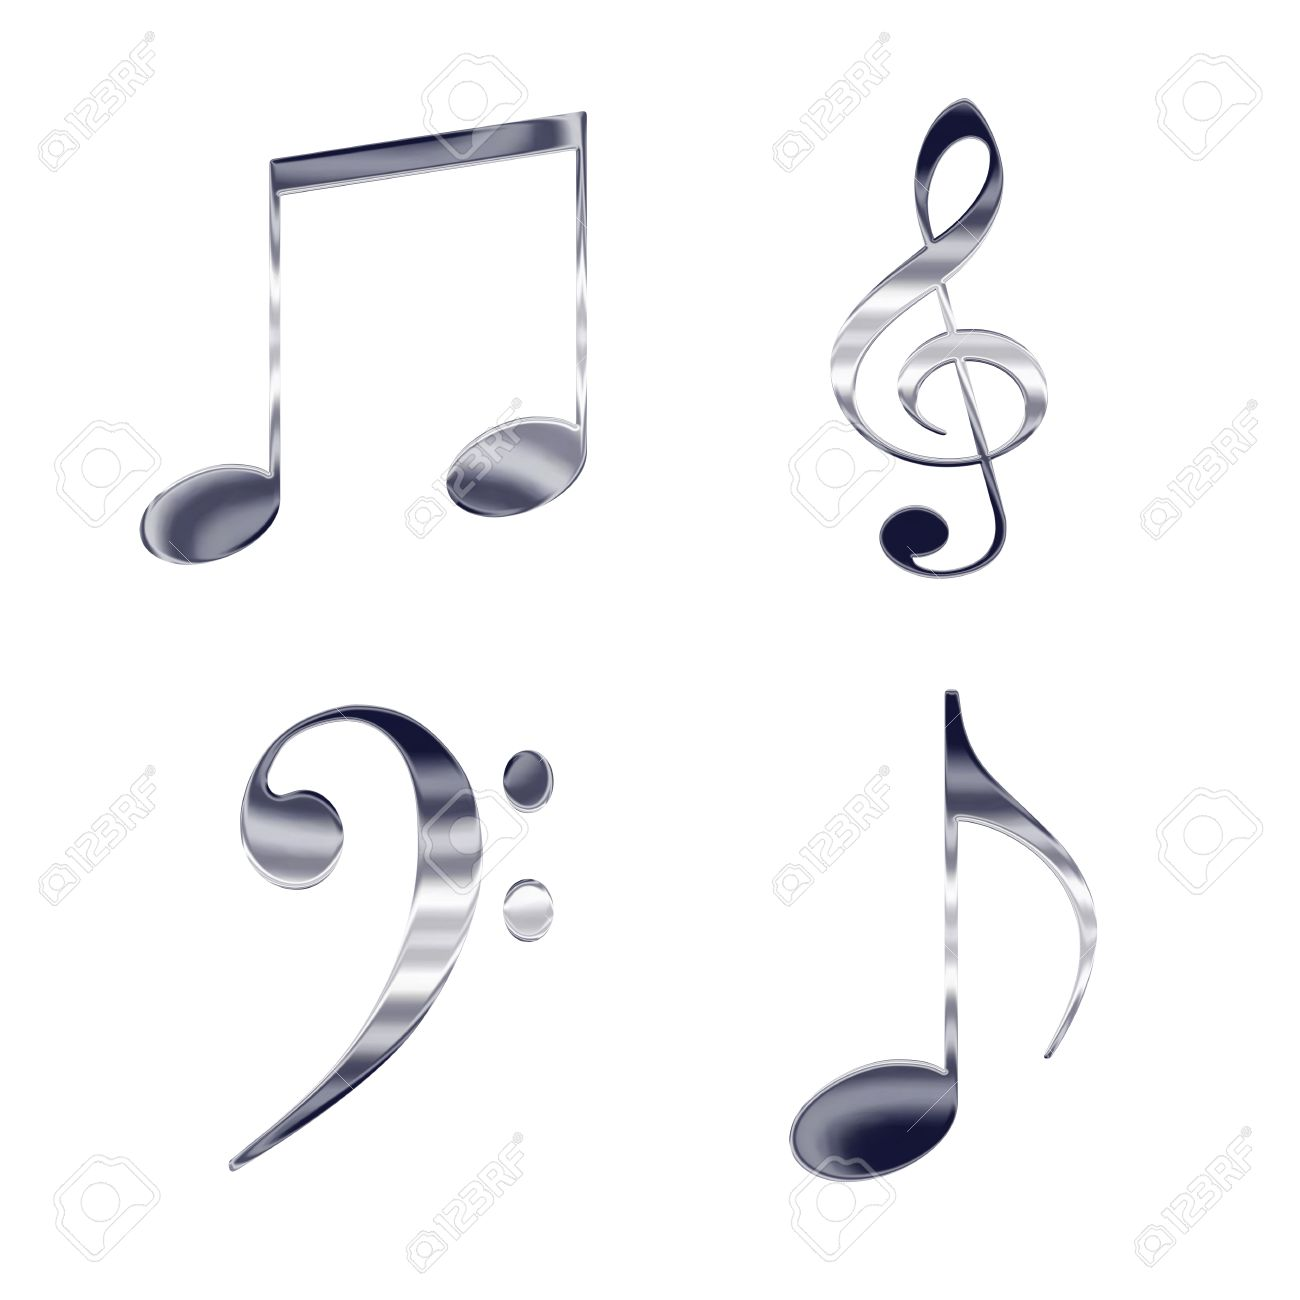 Set Of Music Notes And Symbols Silver Metal Icons Stock Photo